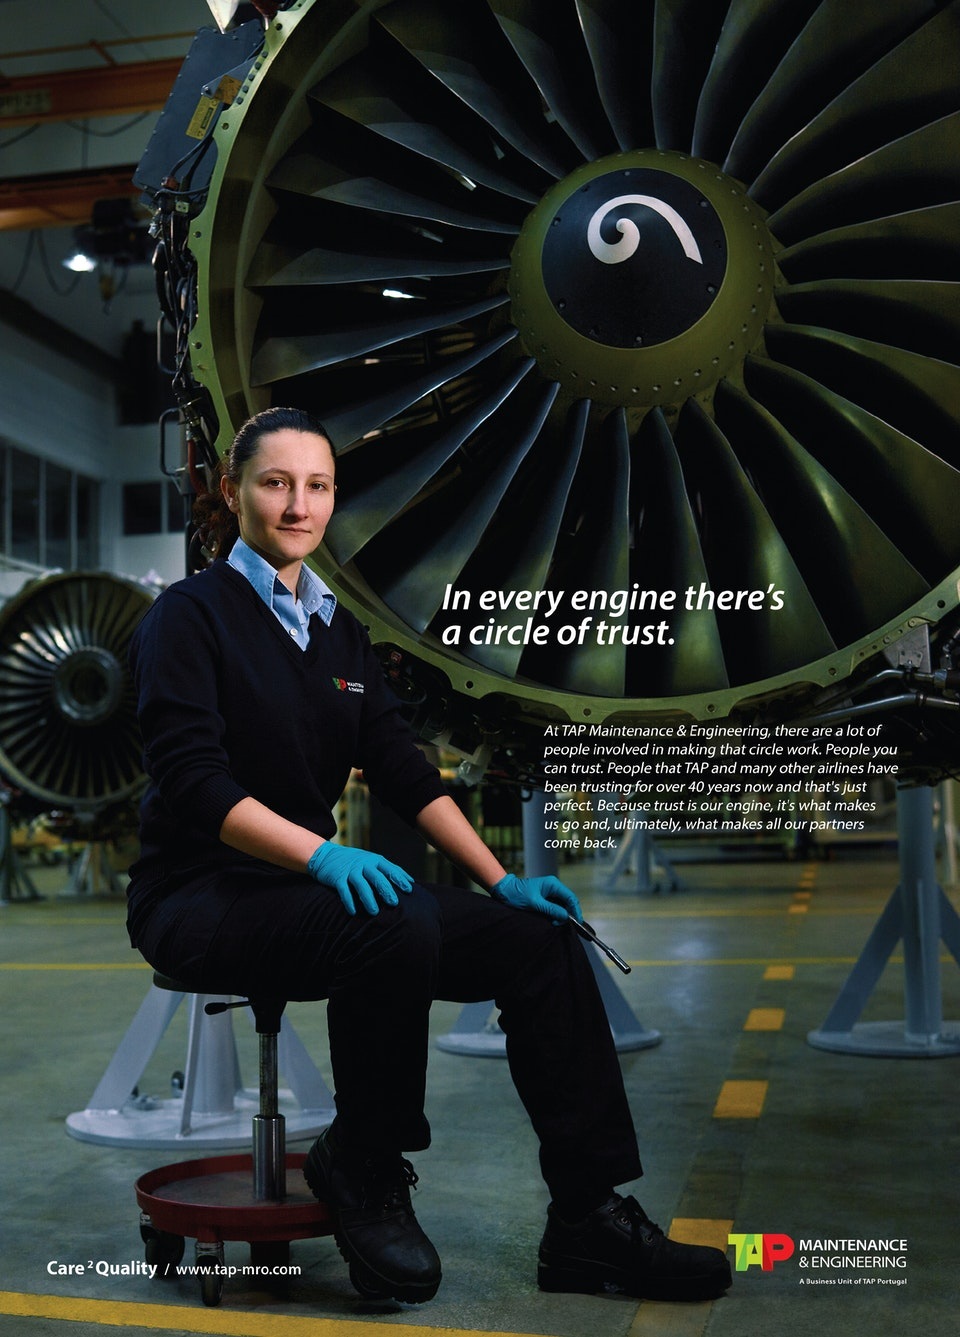 'The Circle of Trust' - TAP MAINTENANCE & ENGINEERING ad_magazine